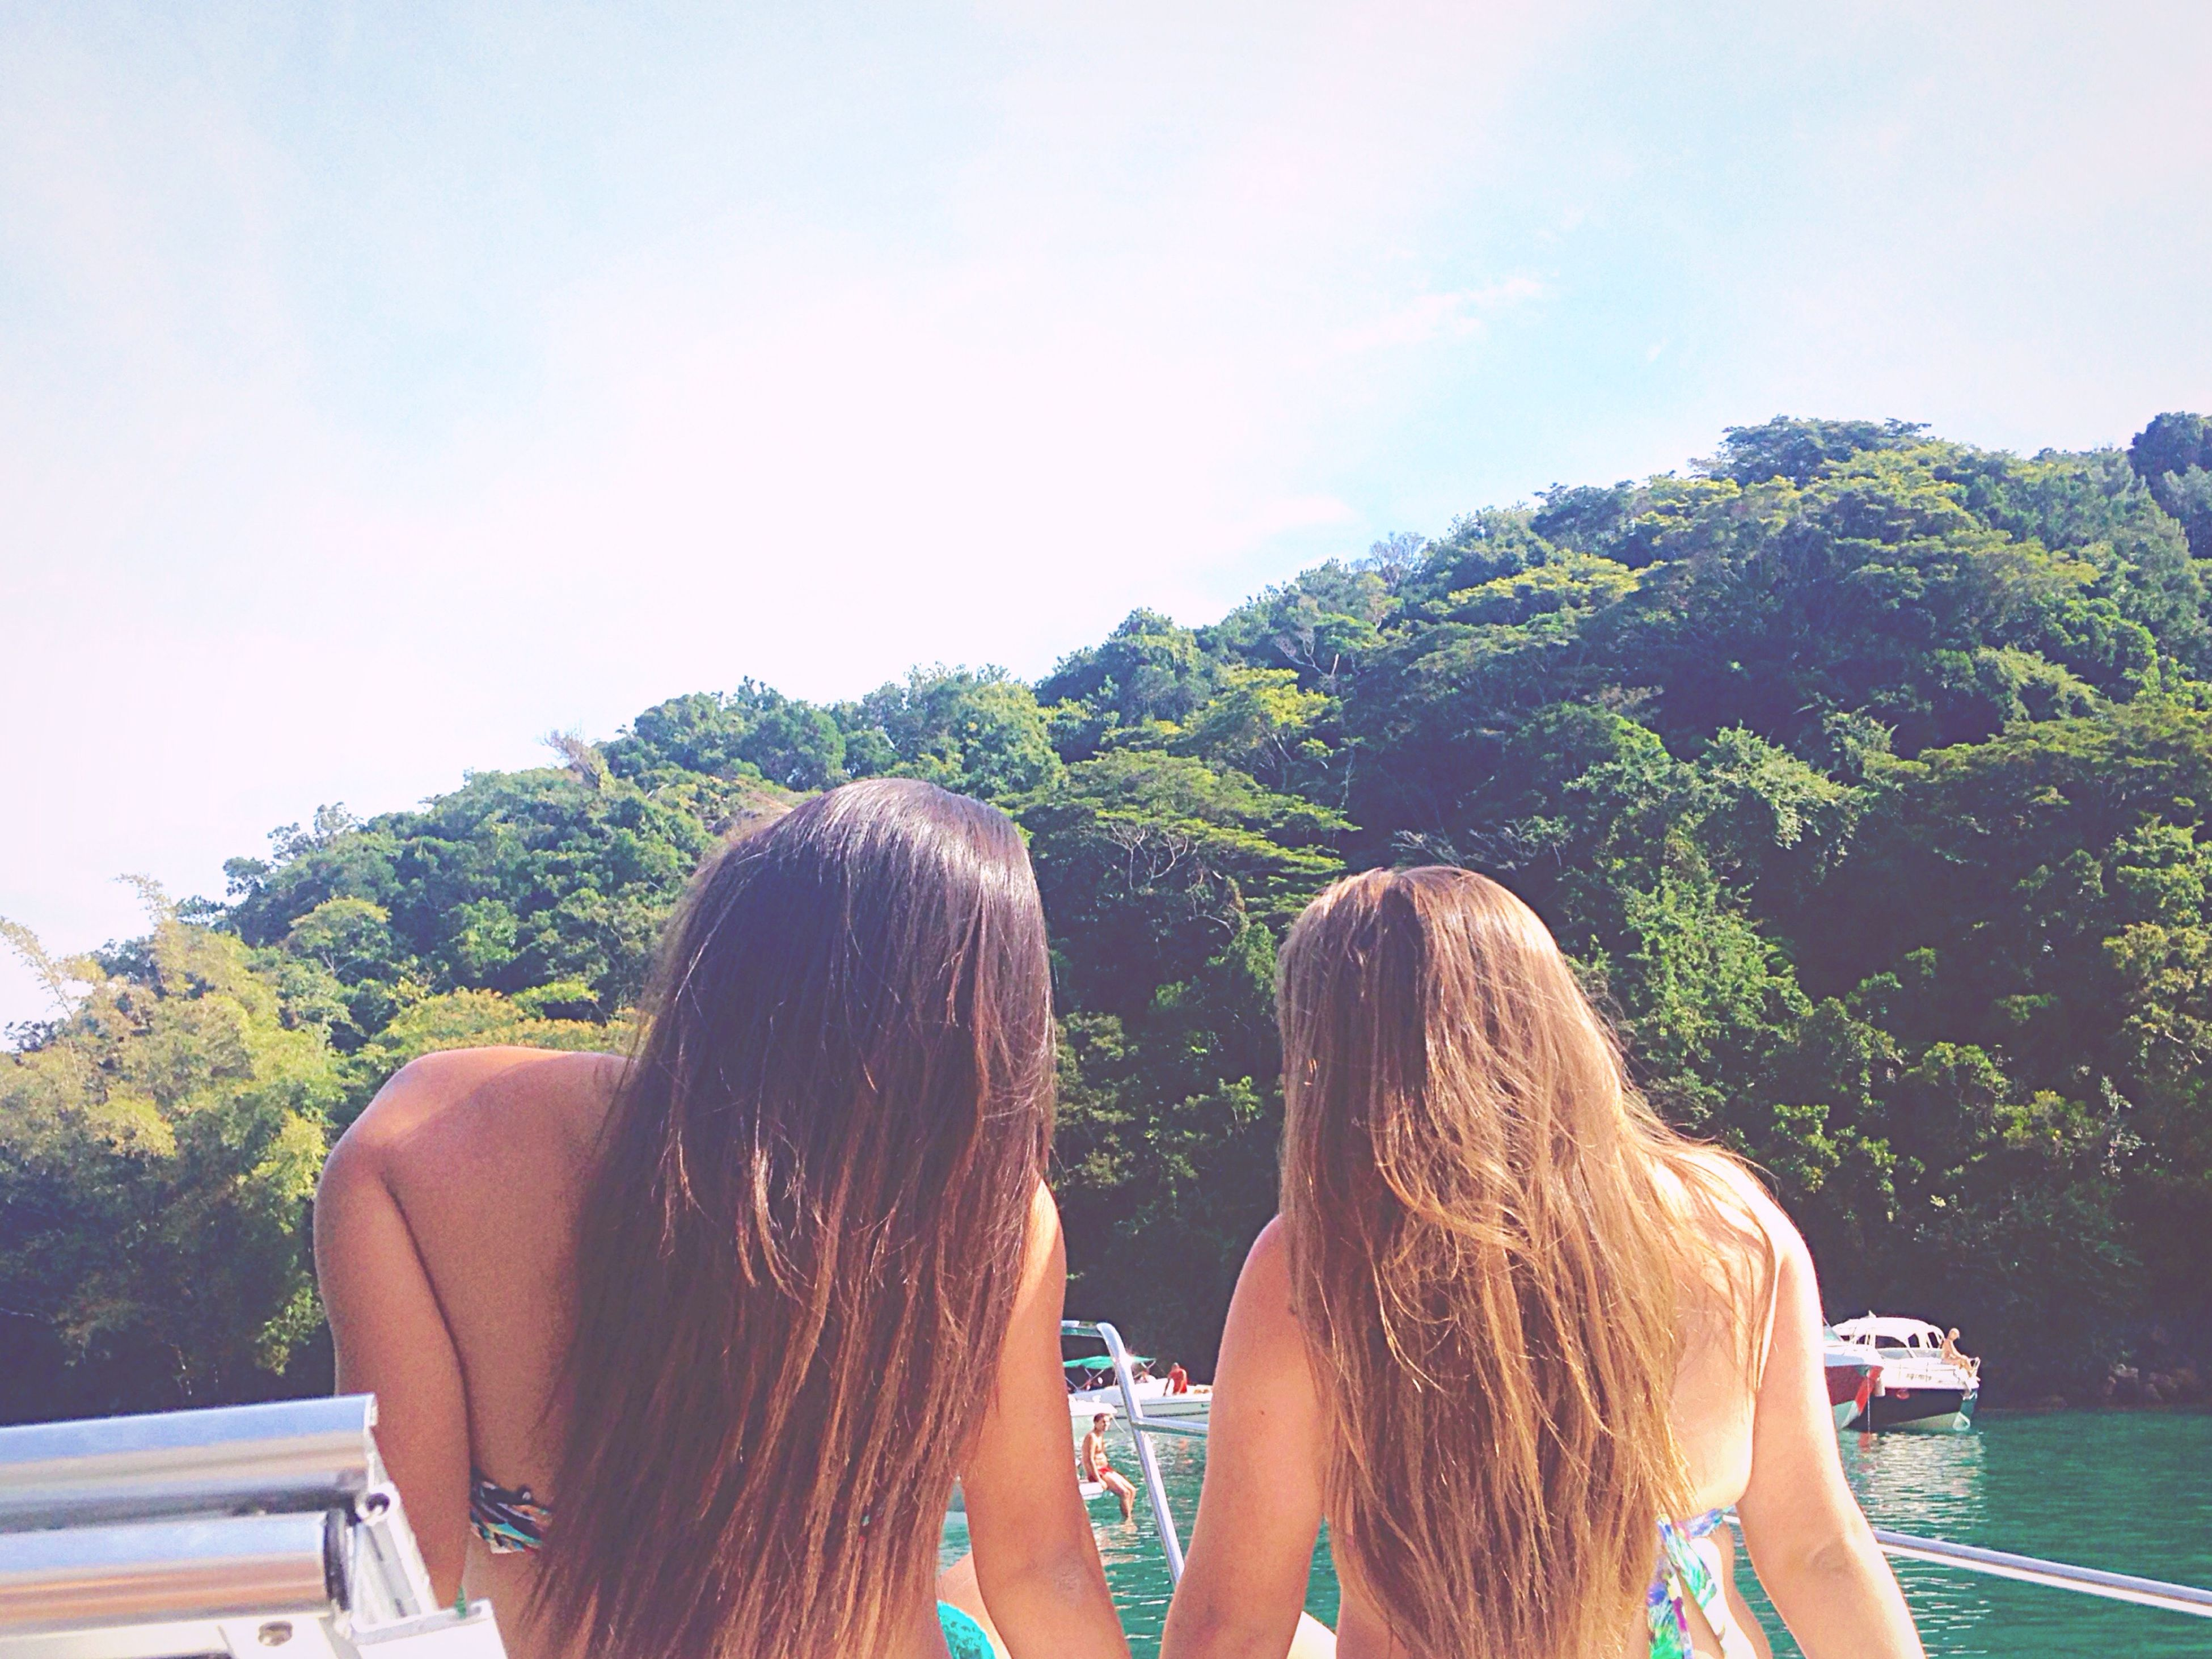 lifestyles, tree, leisure activity, person, long hair, rear view, young women, headshot, young adult, togetherness, sky, waist up, water, nature, vacations, day, men